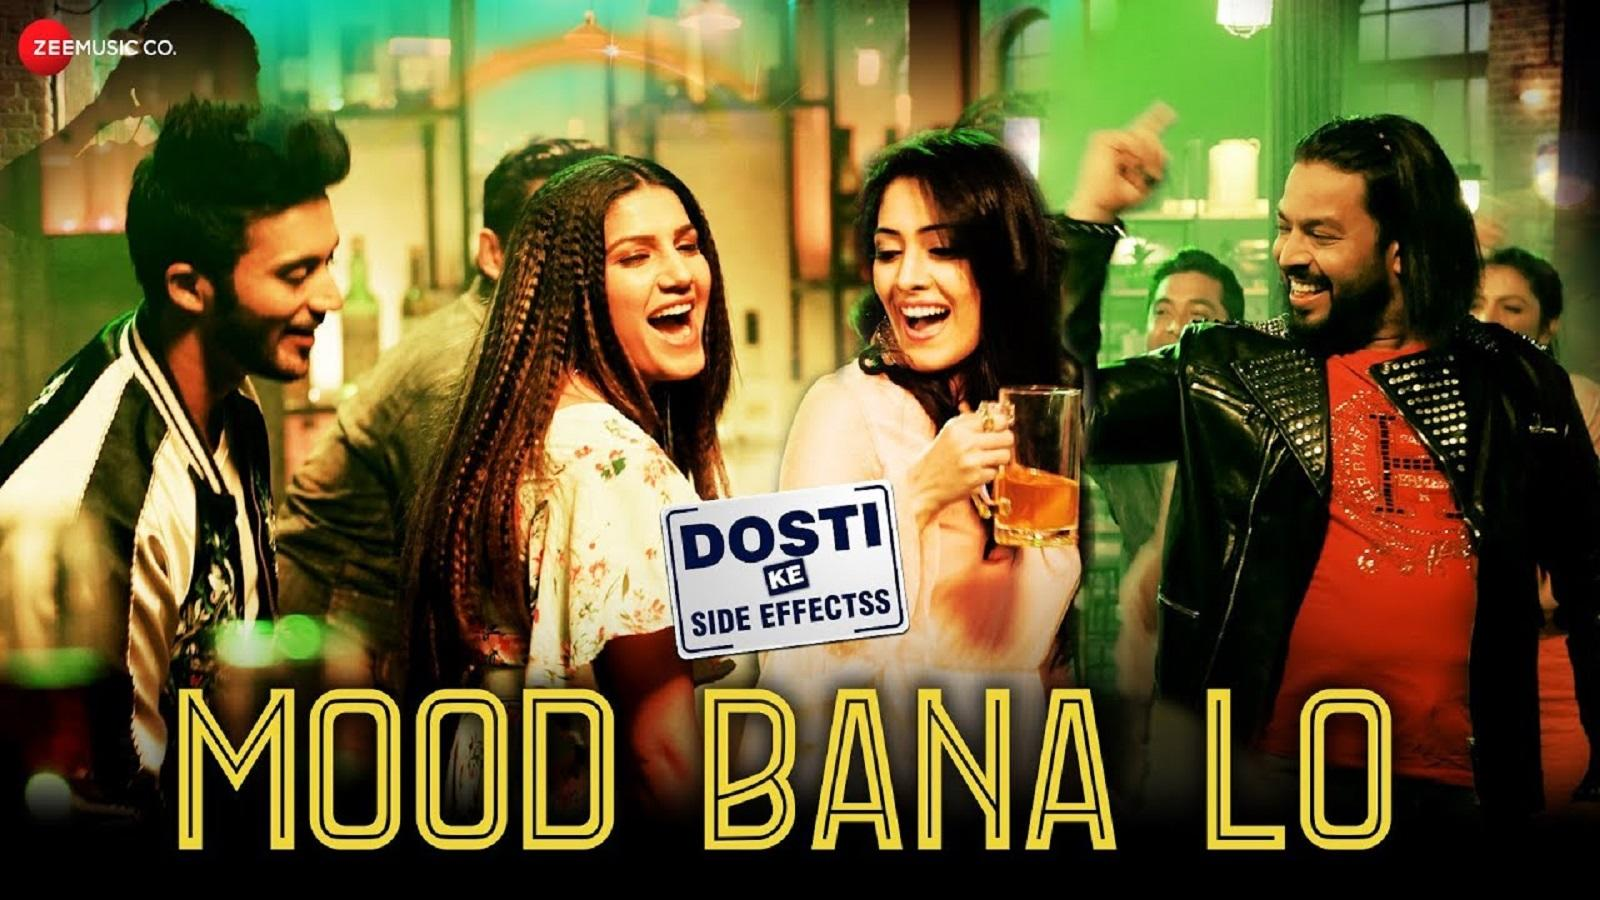 Sapna Choudhary's latest Hindi song 'Mood Bana Lo' from movie 'Dosti Ke  Side Effectss'